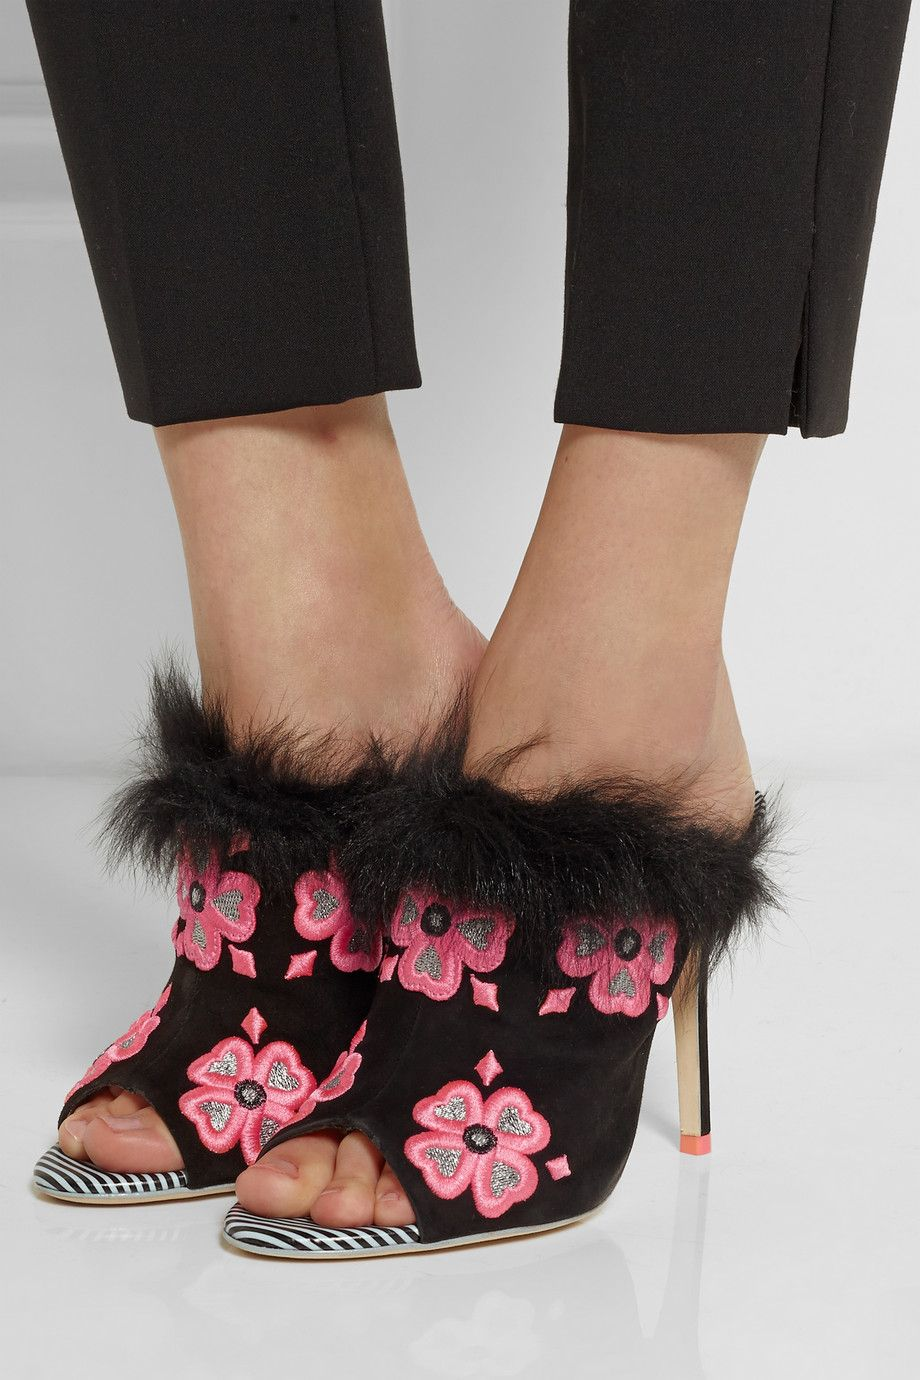 Cheap And Best Quality Sophia Webster Suede Black Louby Embroidered Marabou trimmed Mules